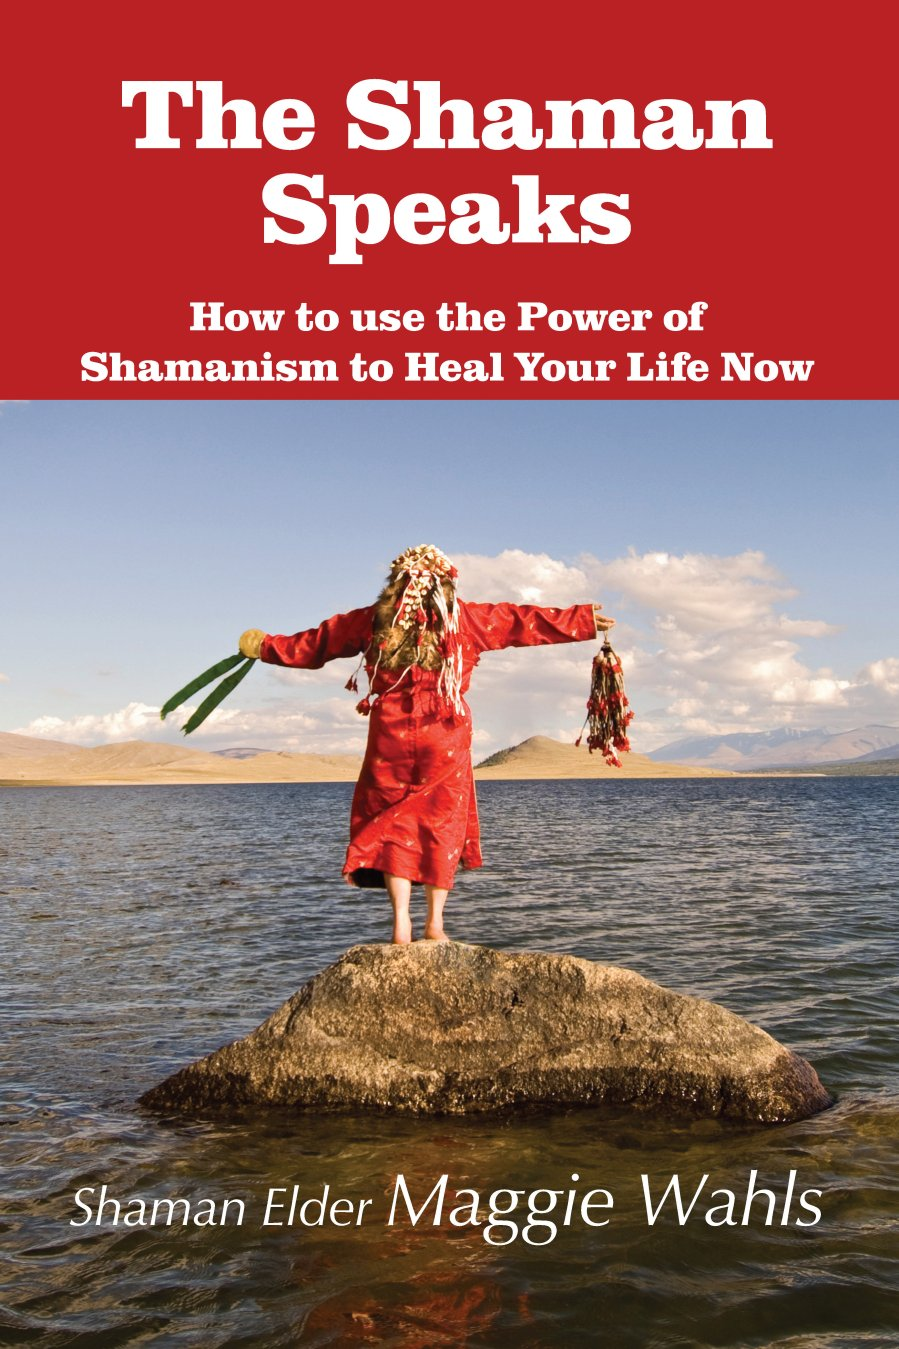 The Shaman Speaks: How to use the Power of Shamanism to Heal Your Life Now 978-1-61599-007-8